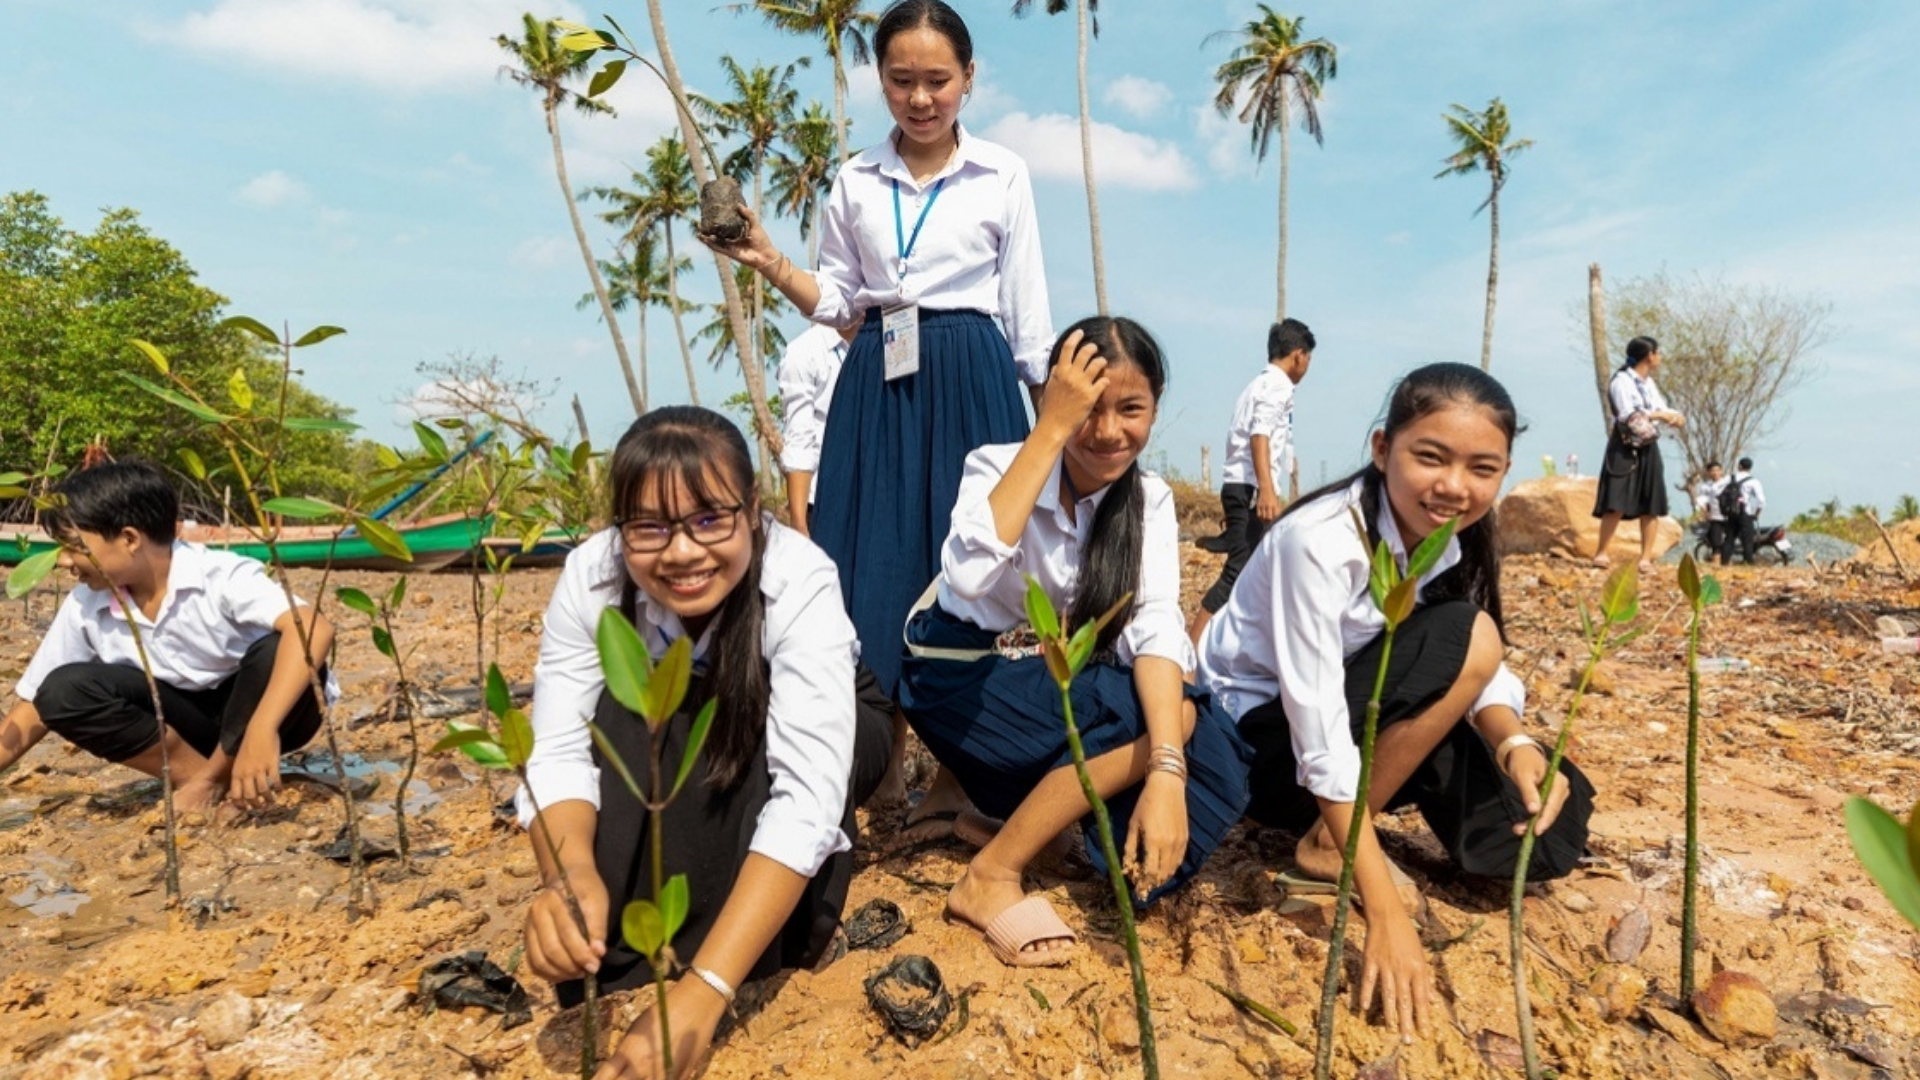 Young people band together to save the planet.